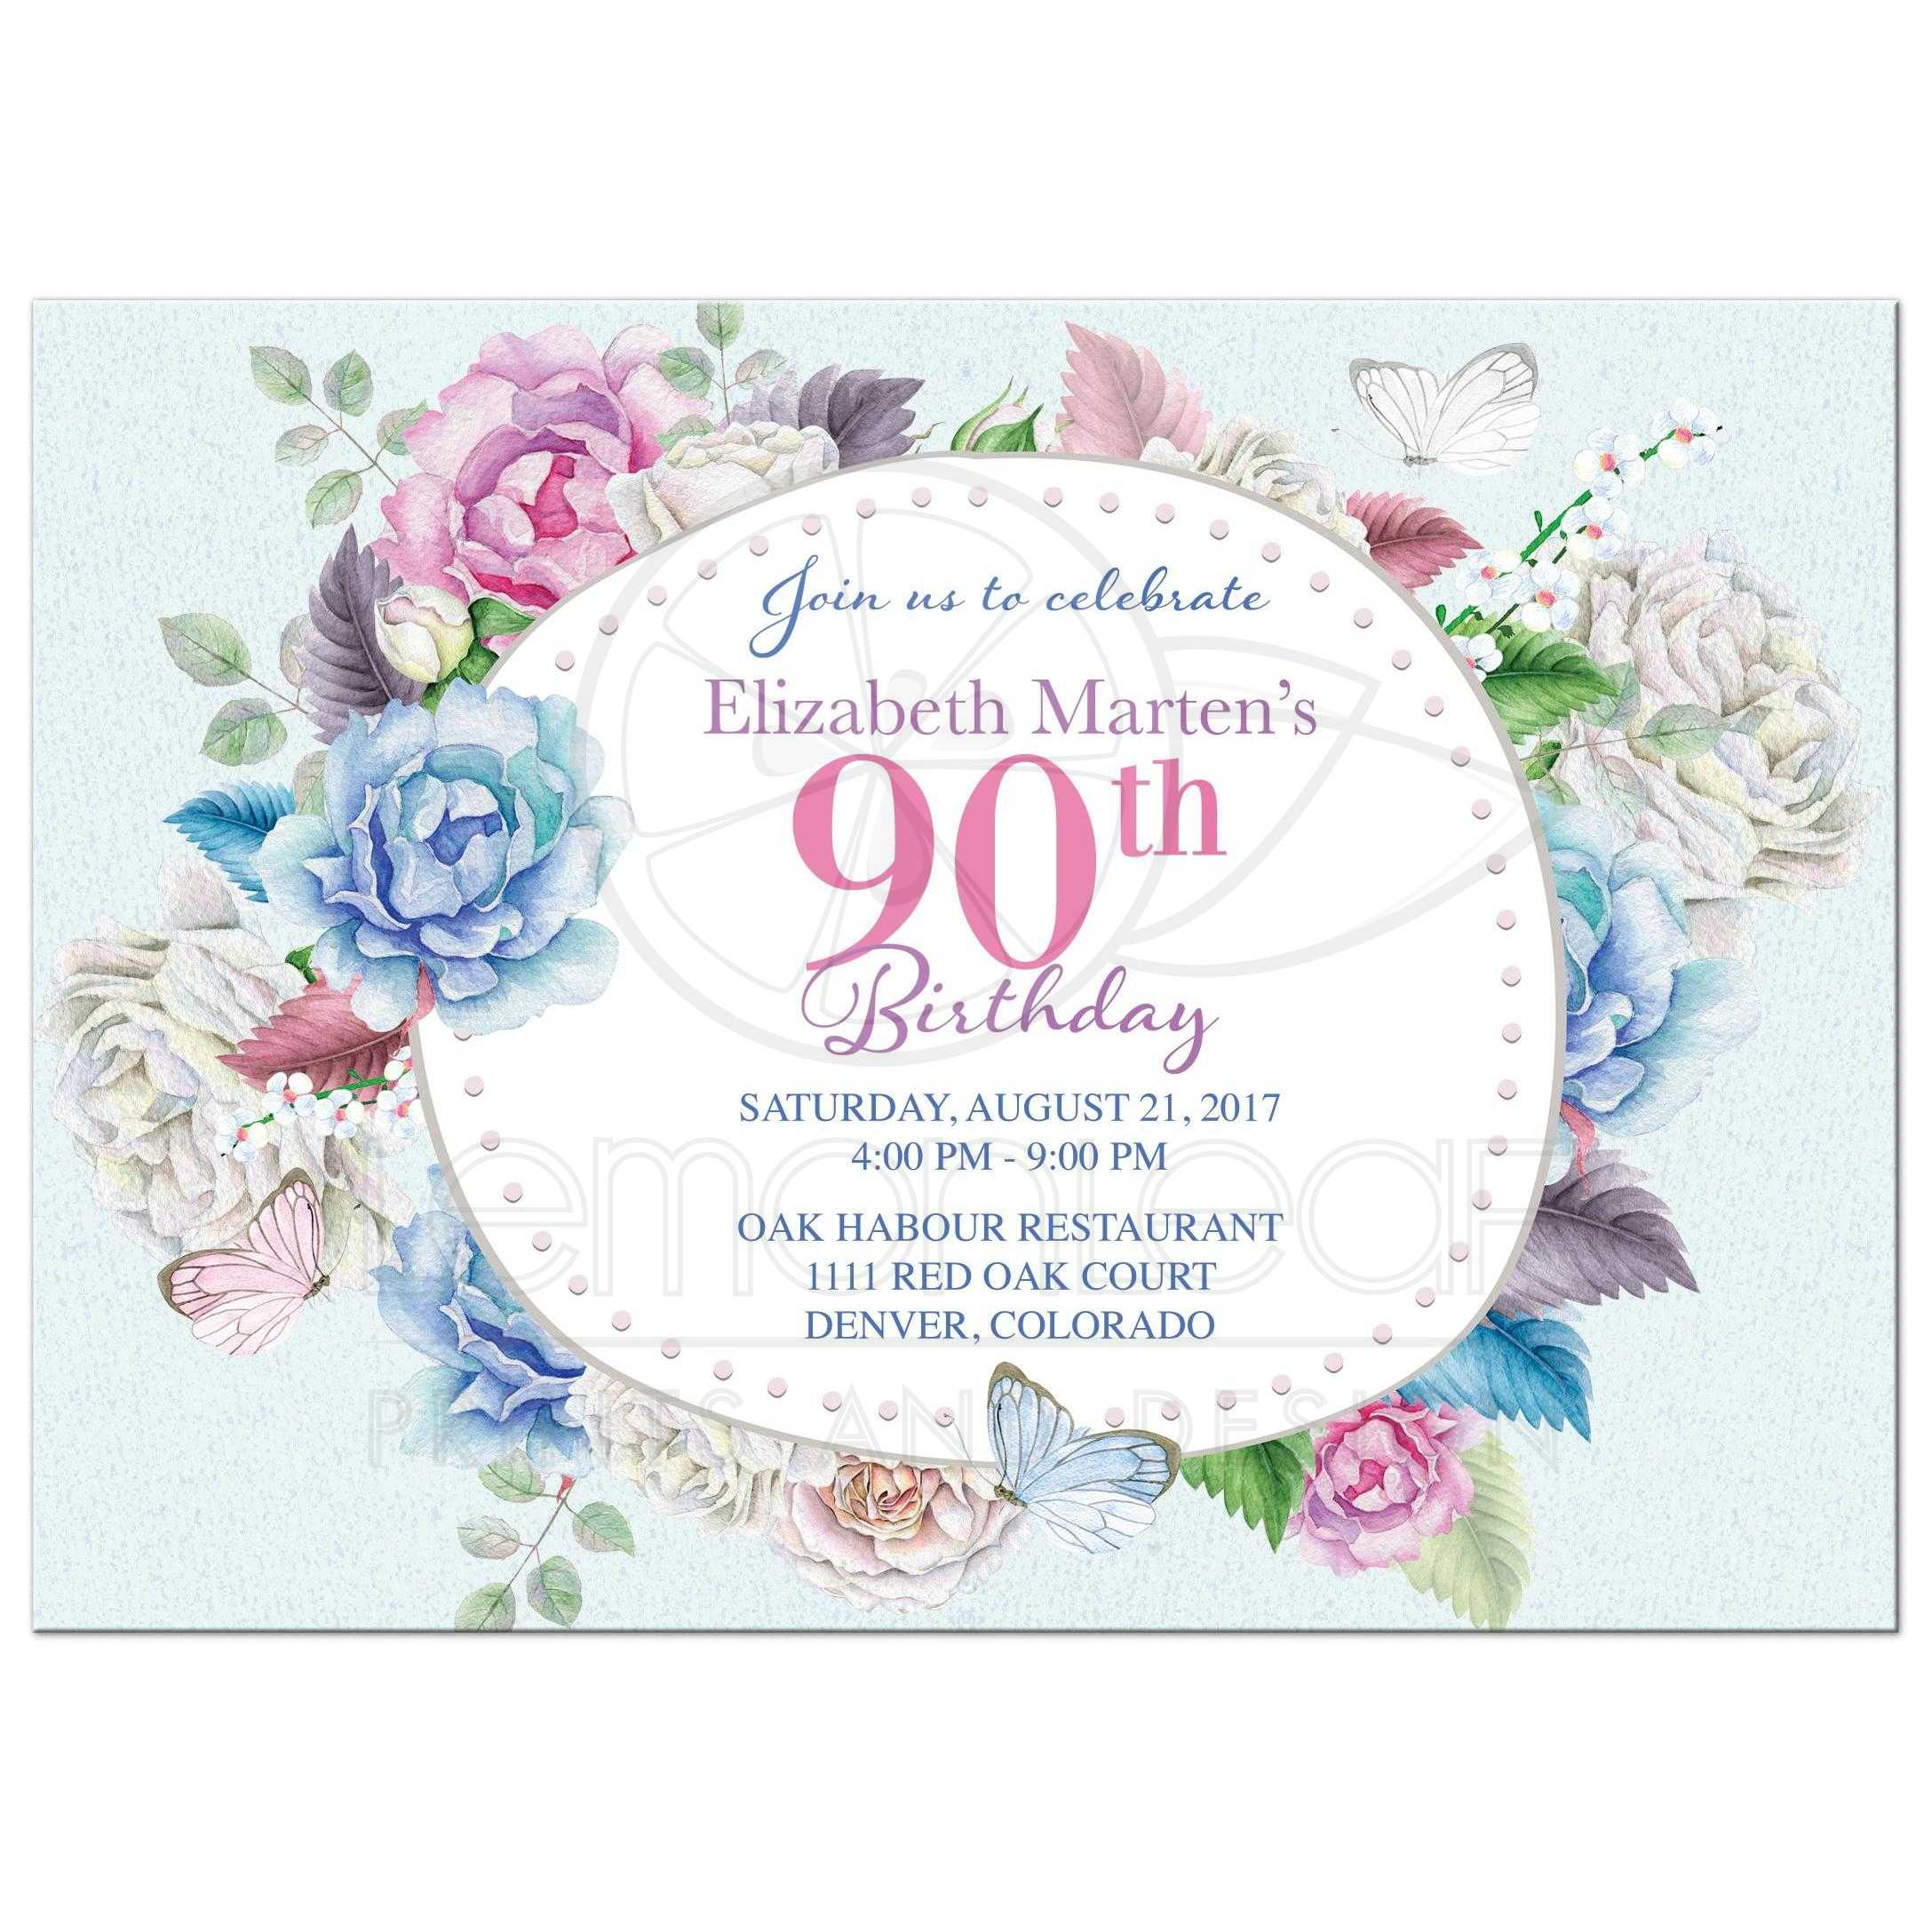 Tempting Watercolor Floral Butterfly Birthday Invitation Front Watercolor Rose Peony Birthday Invitation Floral Frame 90th Birthday Invitations Response Cards 90th Birthday Invitations Serviettes invitations 90th Birthday Invitations